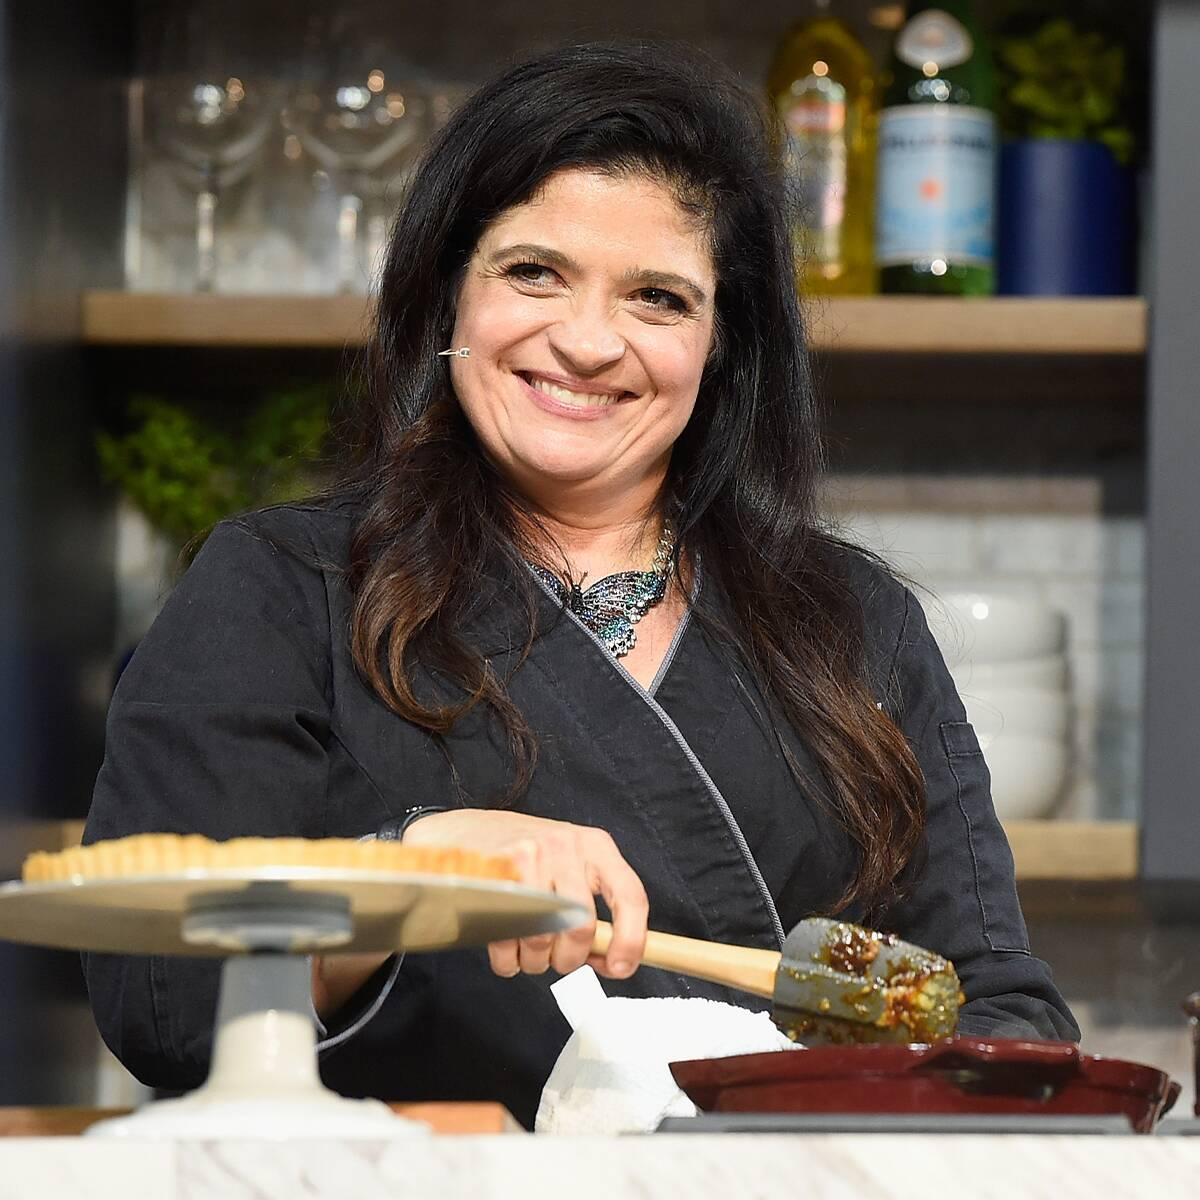 Why Food Network's Alex Guarnaschelli Is On a Mission to Help Single Moms